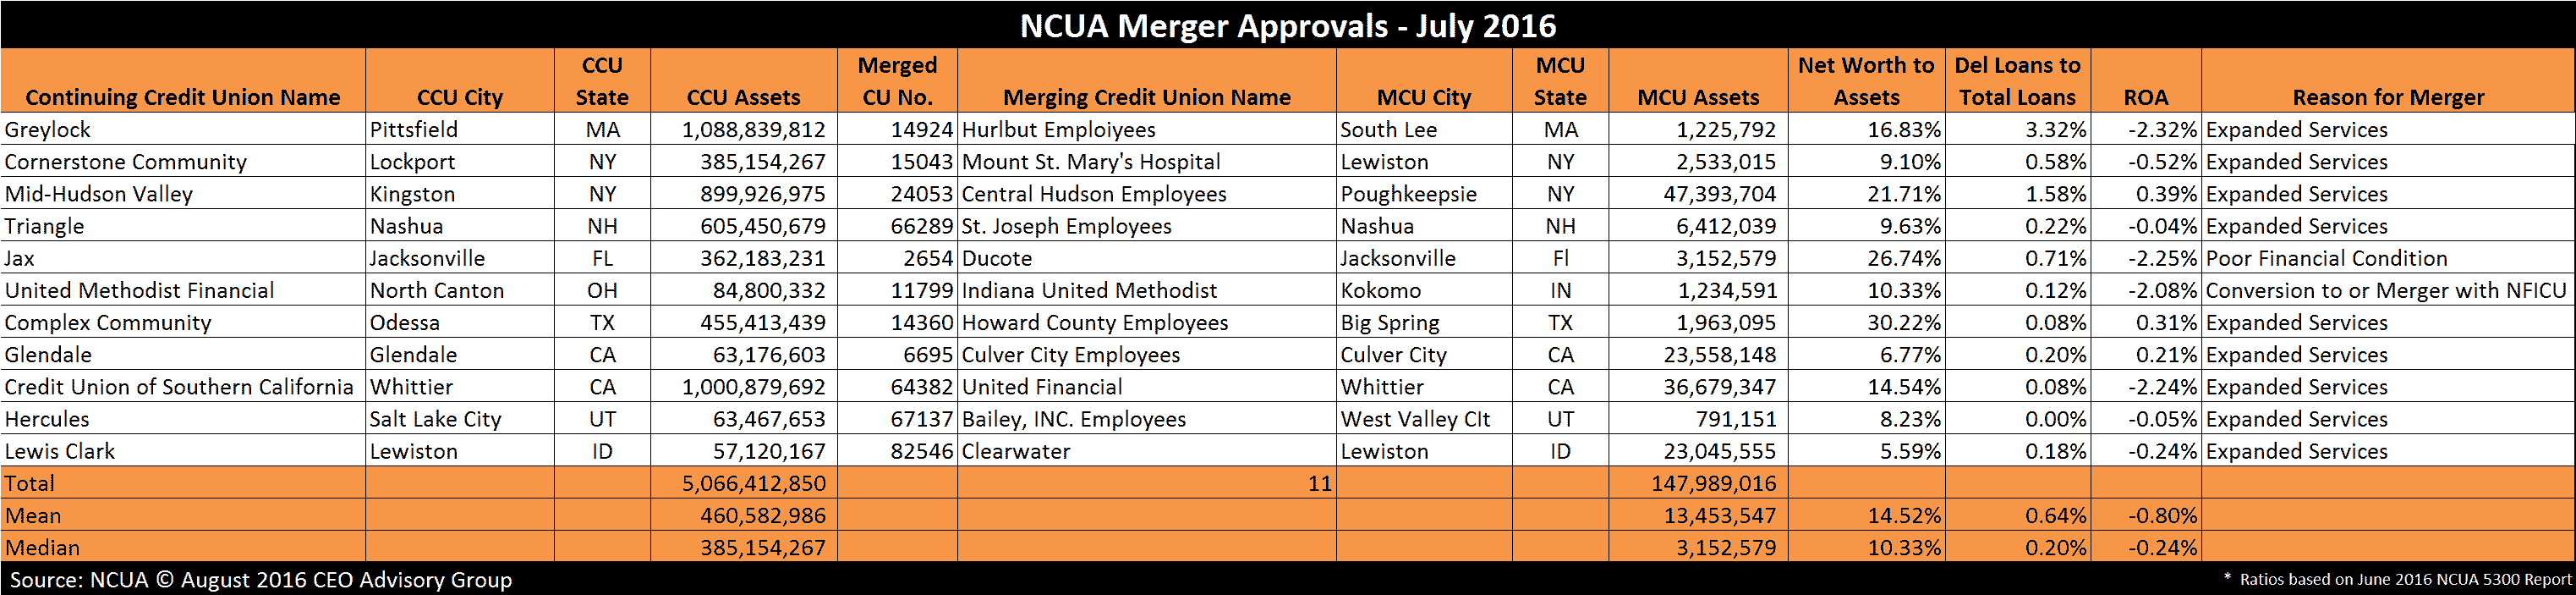 NCUA Credit Union Merger Approvals